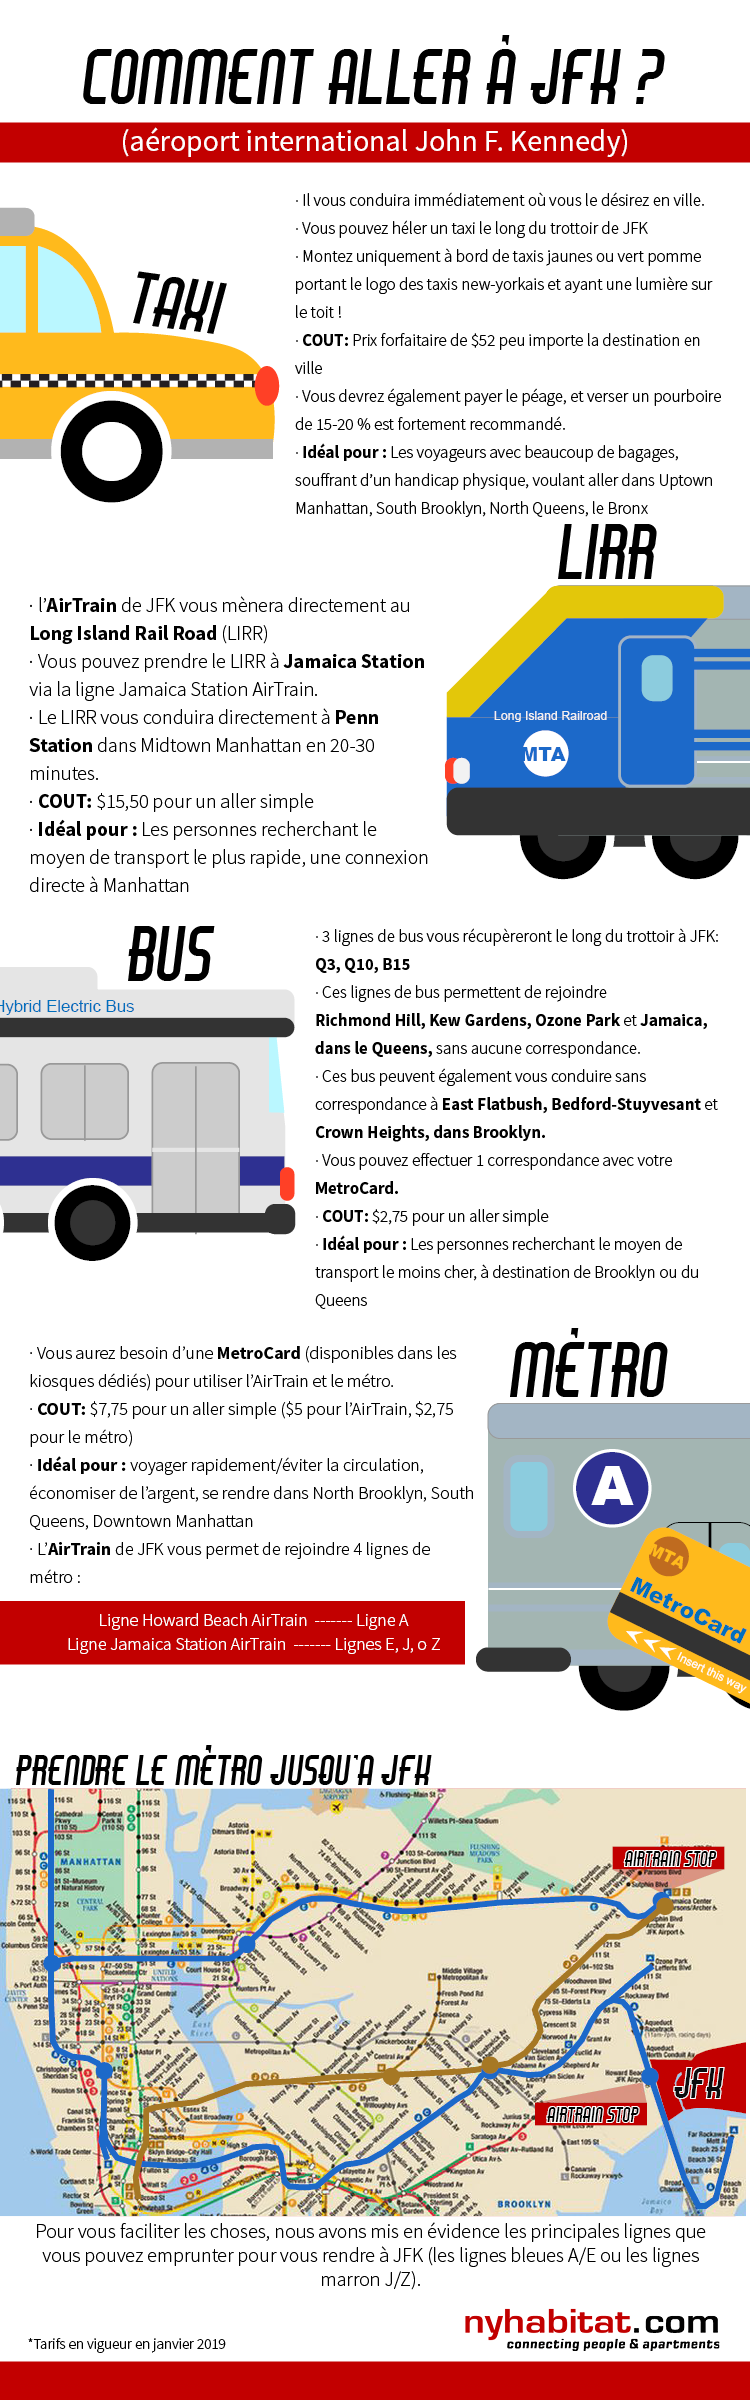 Infographie de New York Habitat décrivant les options de transport à JFK, y compris le taxi, le métro, les bus et le Long Island Rail Road.